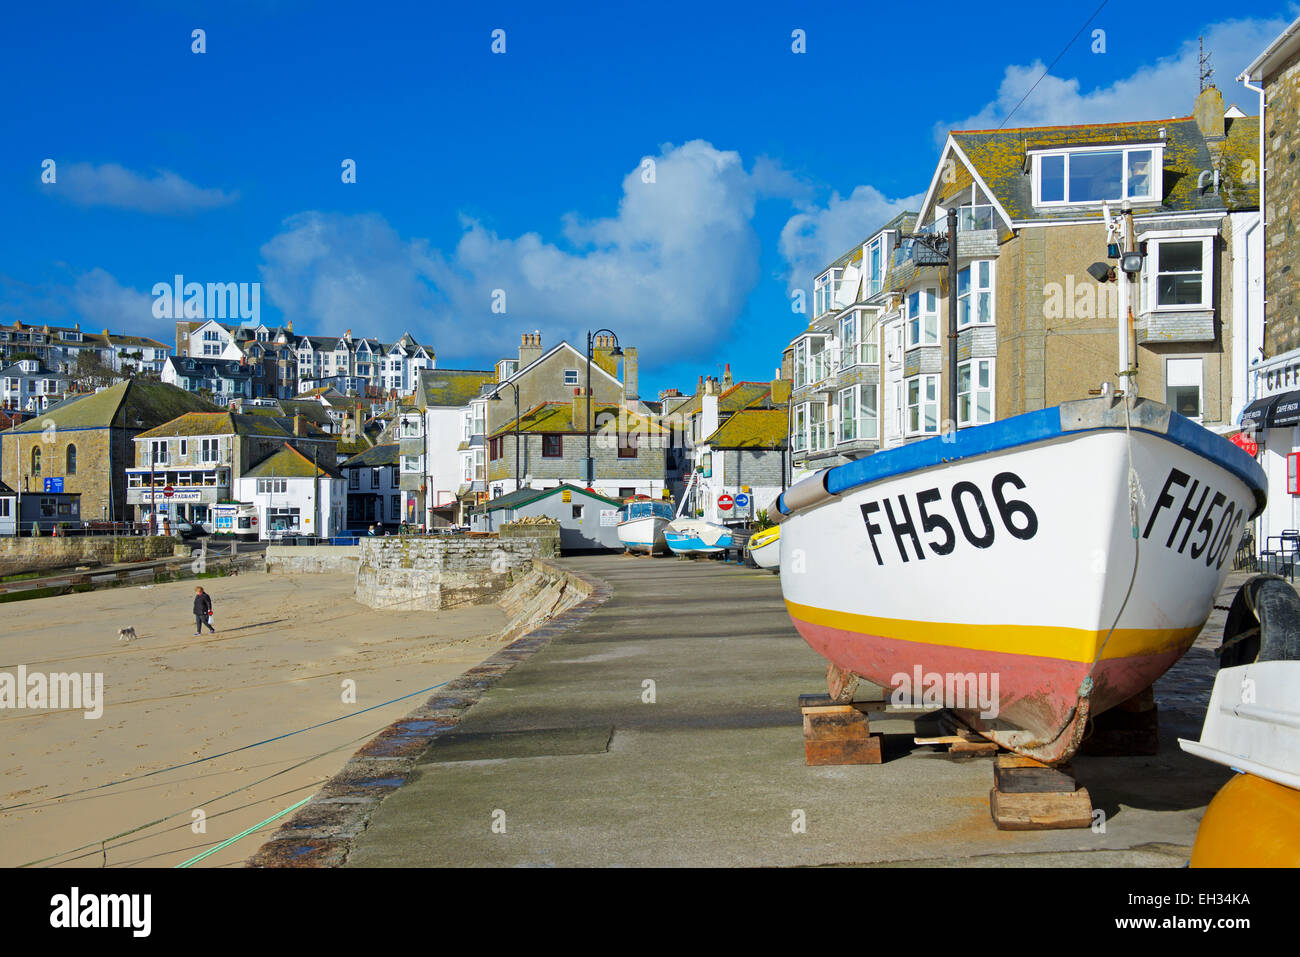 The harbour and quay, St Ives, Cornwall, England UK - Stock Image